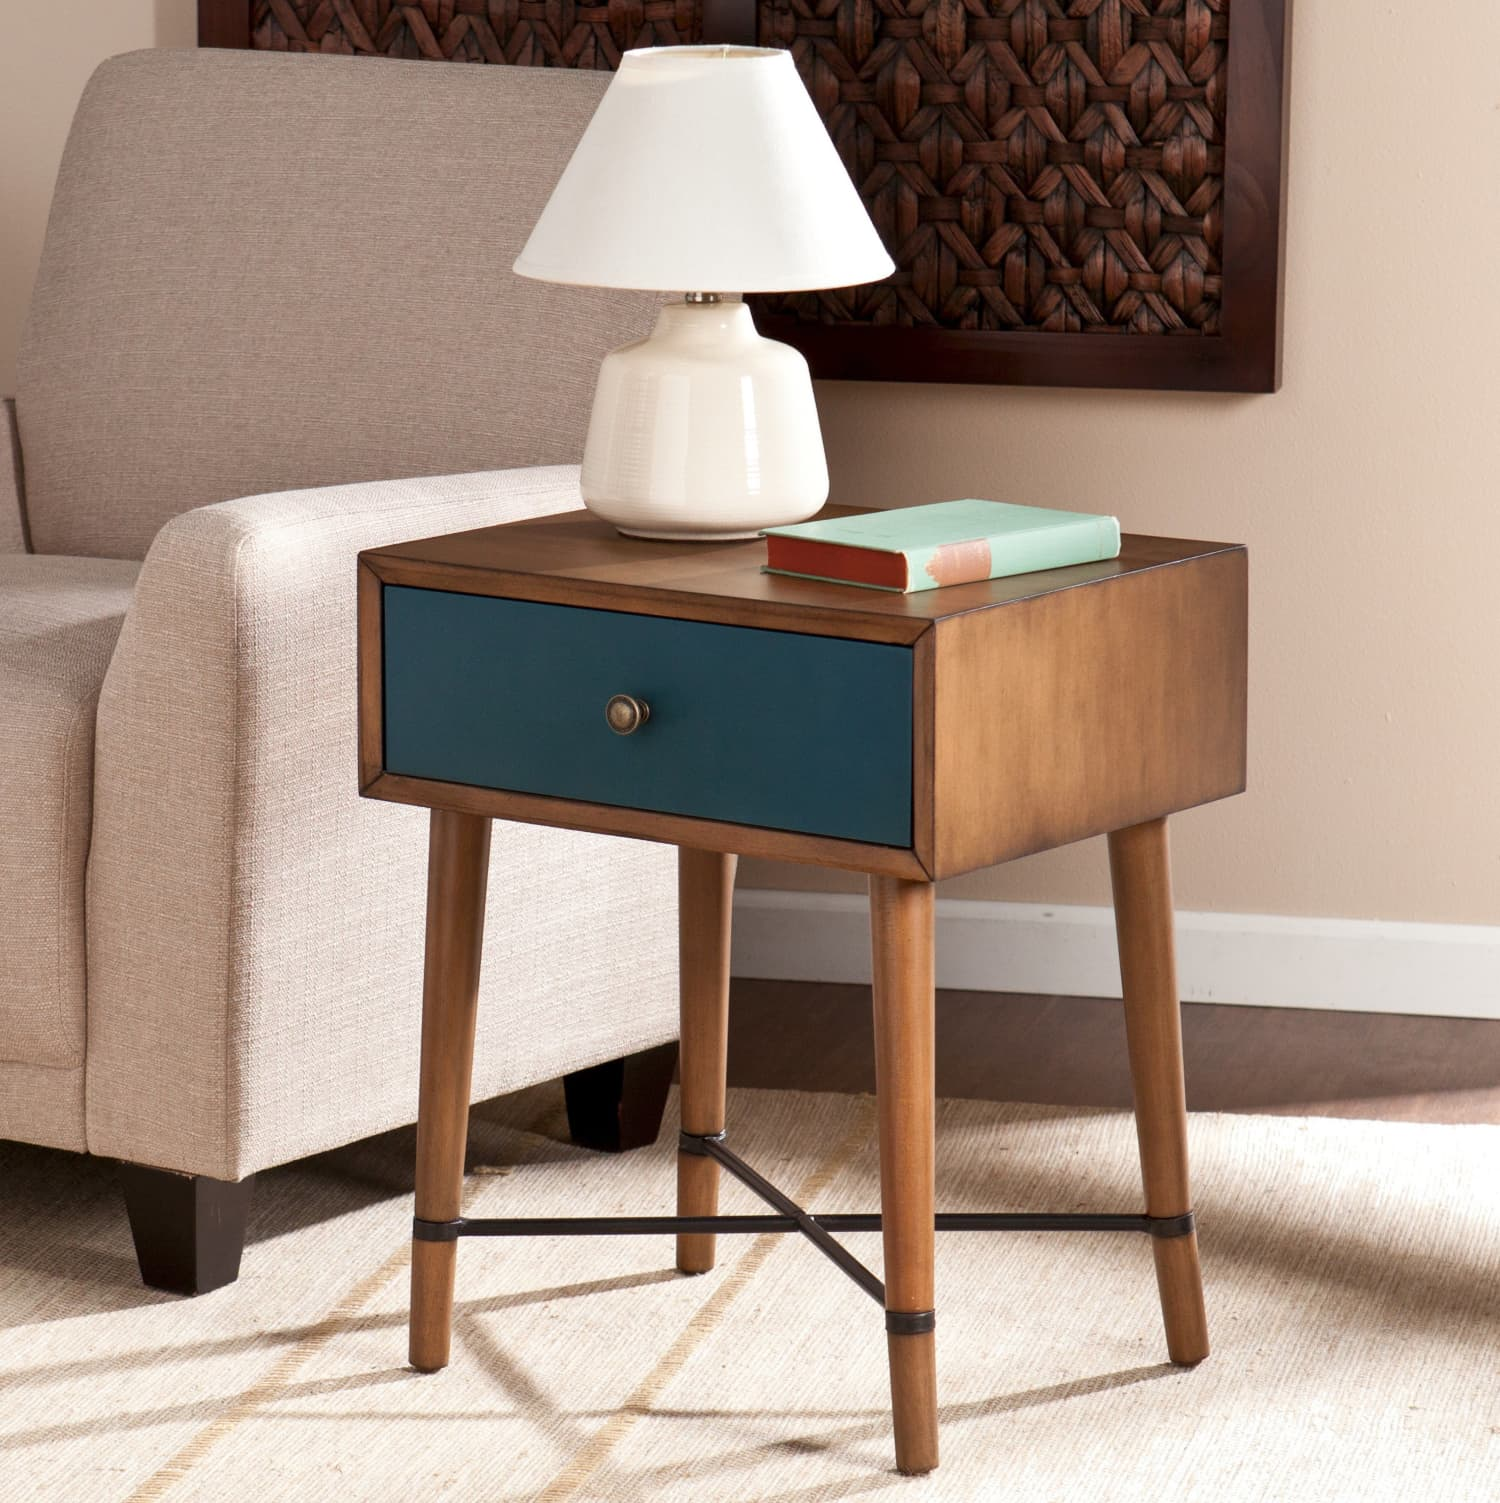 Mid-Century Modern Style Furniture From Big-Box Stores